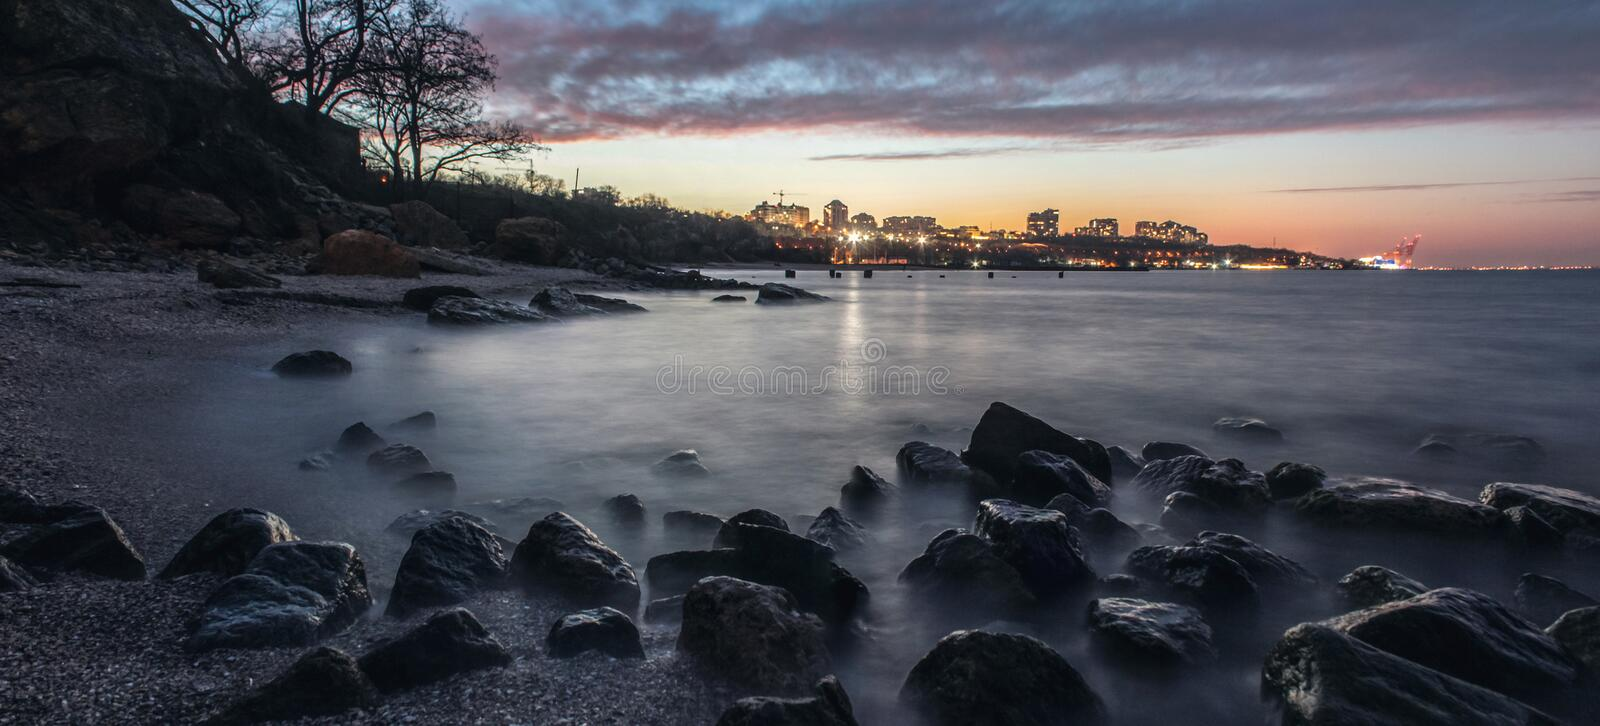 Long exposure of a stunning rocky beach in Odessa at dusk. royalty free stock images